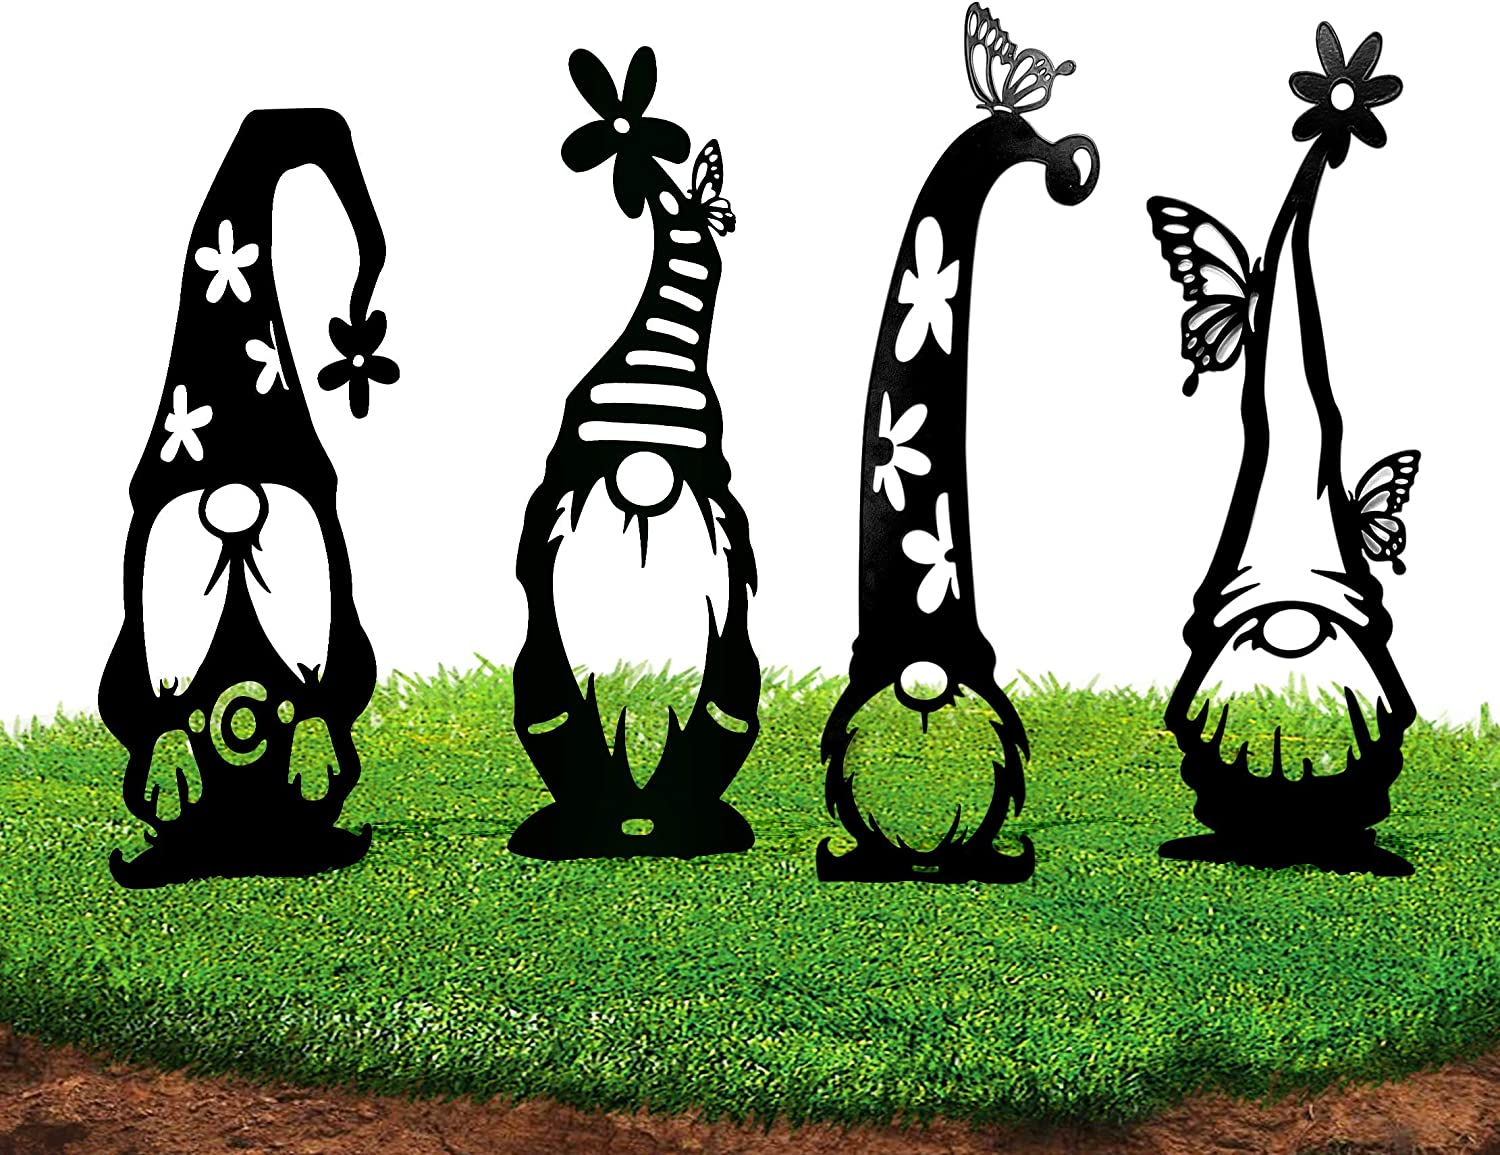 Steel Branch Gnomes Decoration,Gnomes Garden Decorations,Metal Yard Art ,Size Increased to 20.9IN Hollow Out Silhouette Garden Statue, Lovely Guardian of Outdoor Garden Lawn (4 Pack)